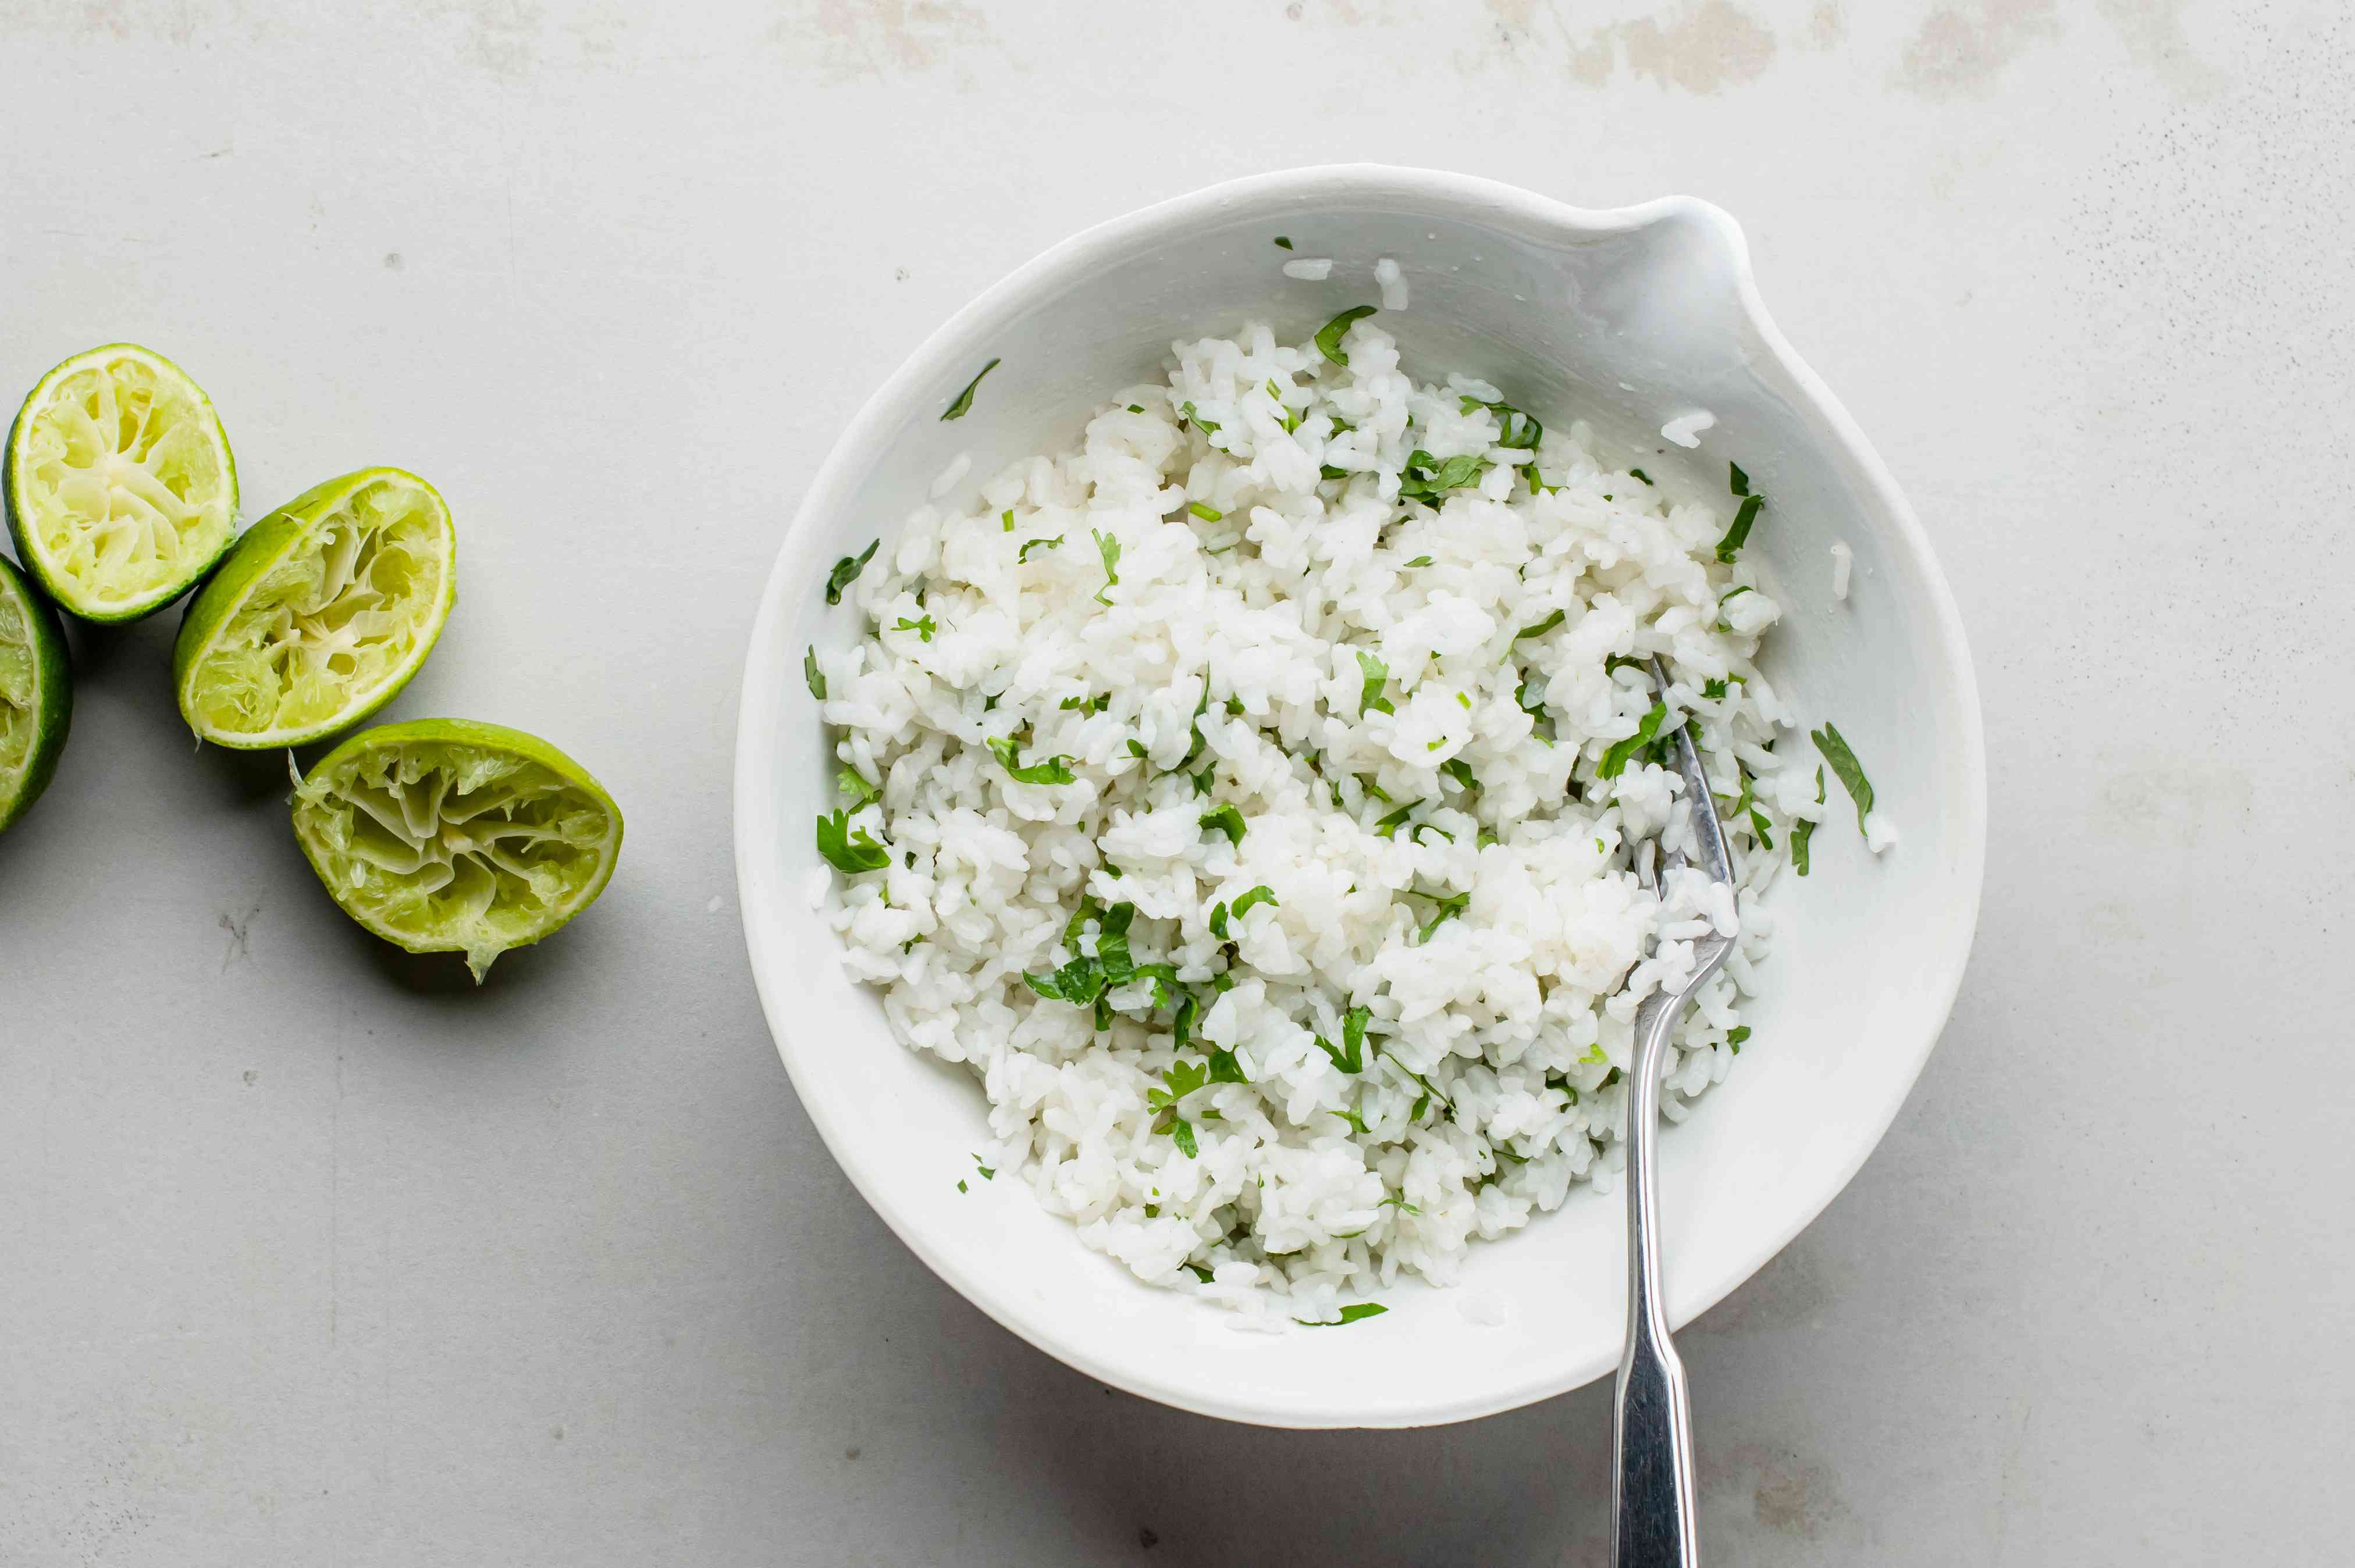 The cilantro is added to the rice and tossed in with a fork